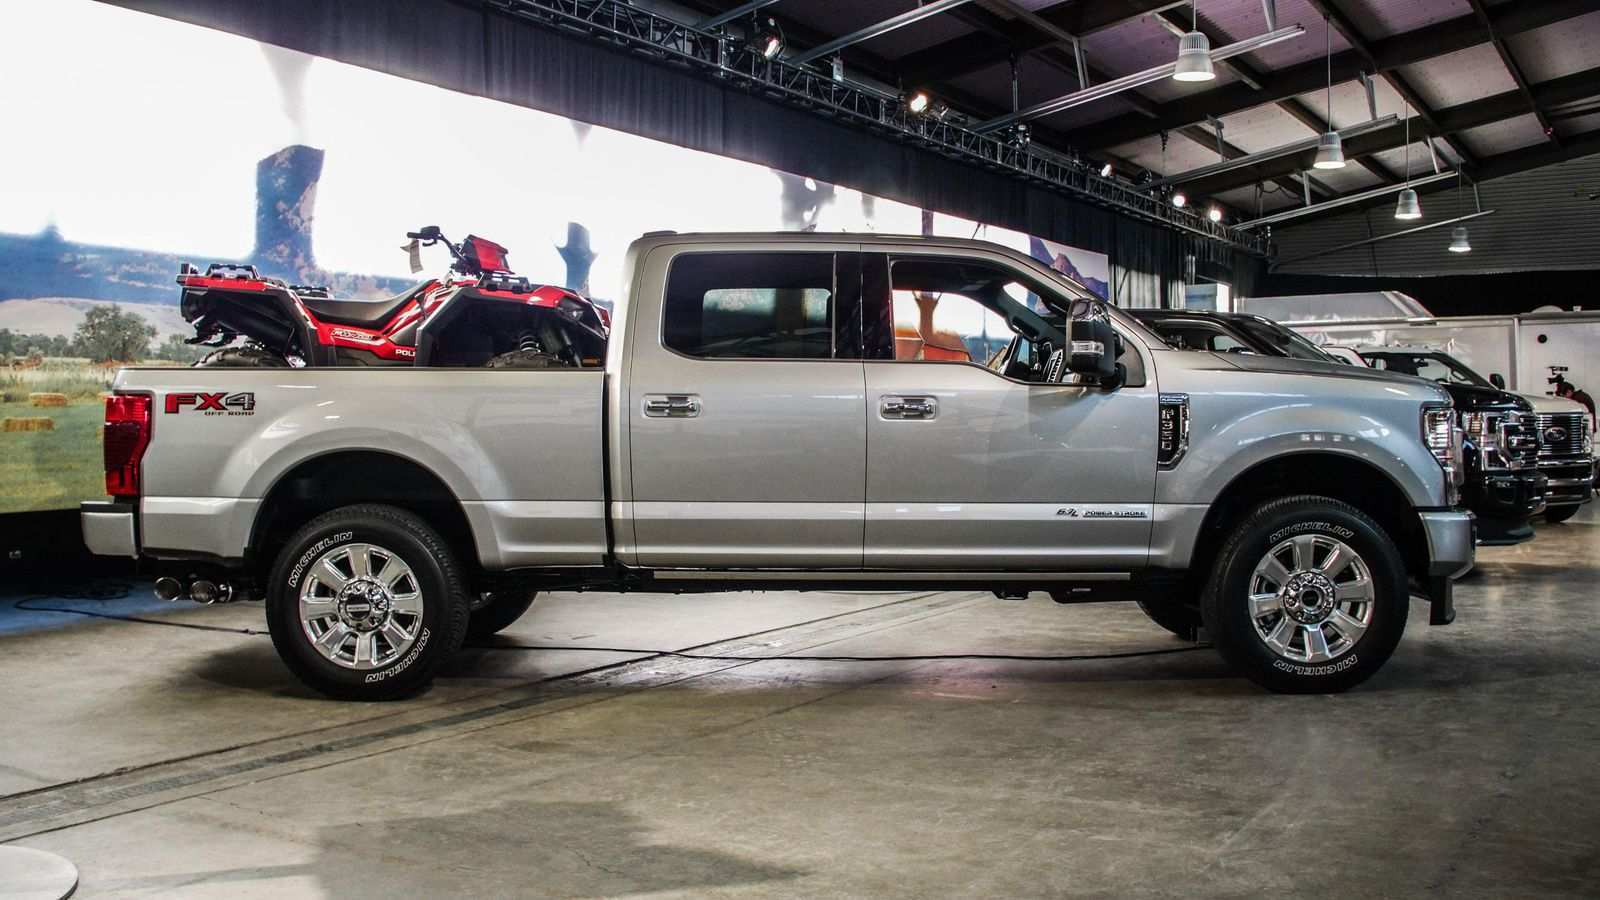 38 A 2020 Ford F450 Super Duty Price Design And Review